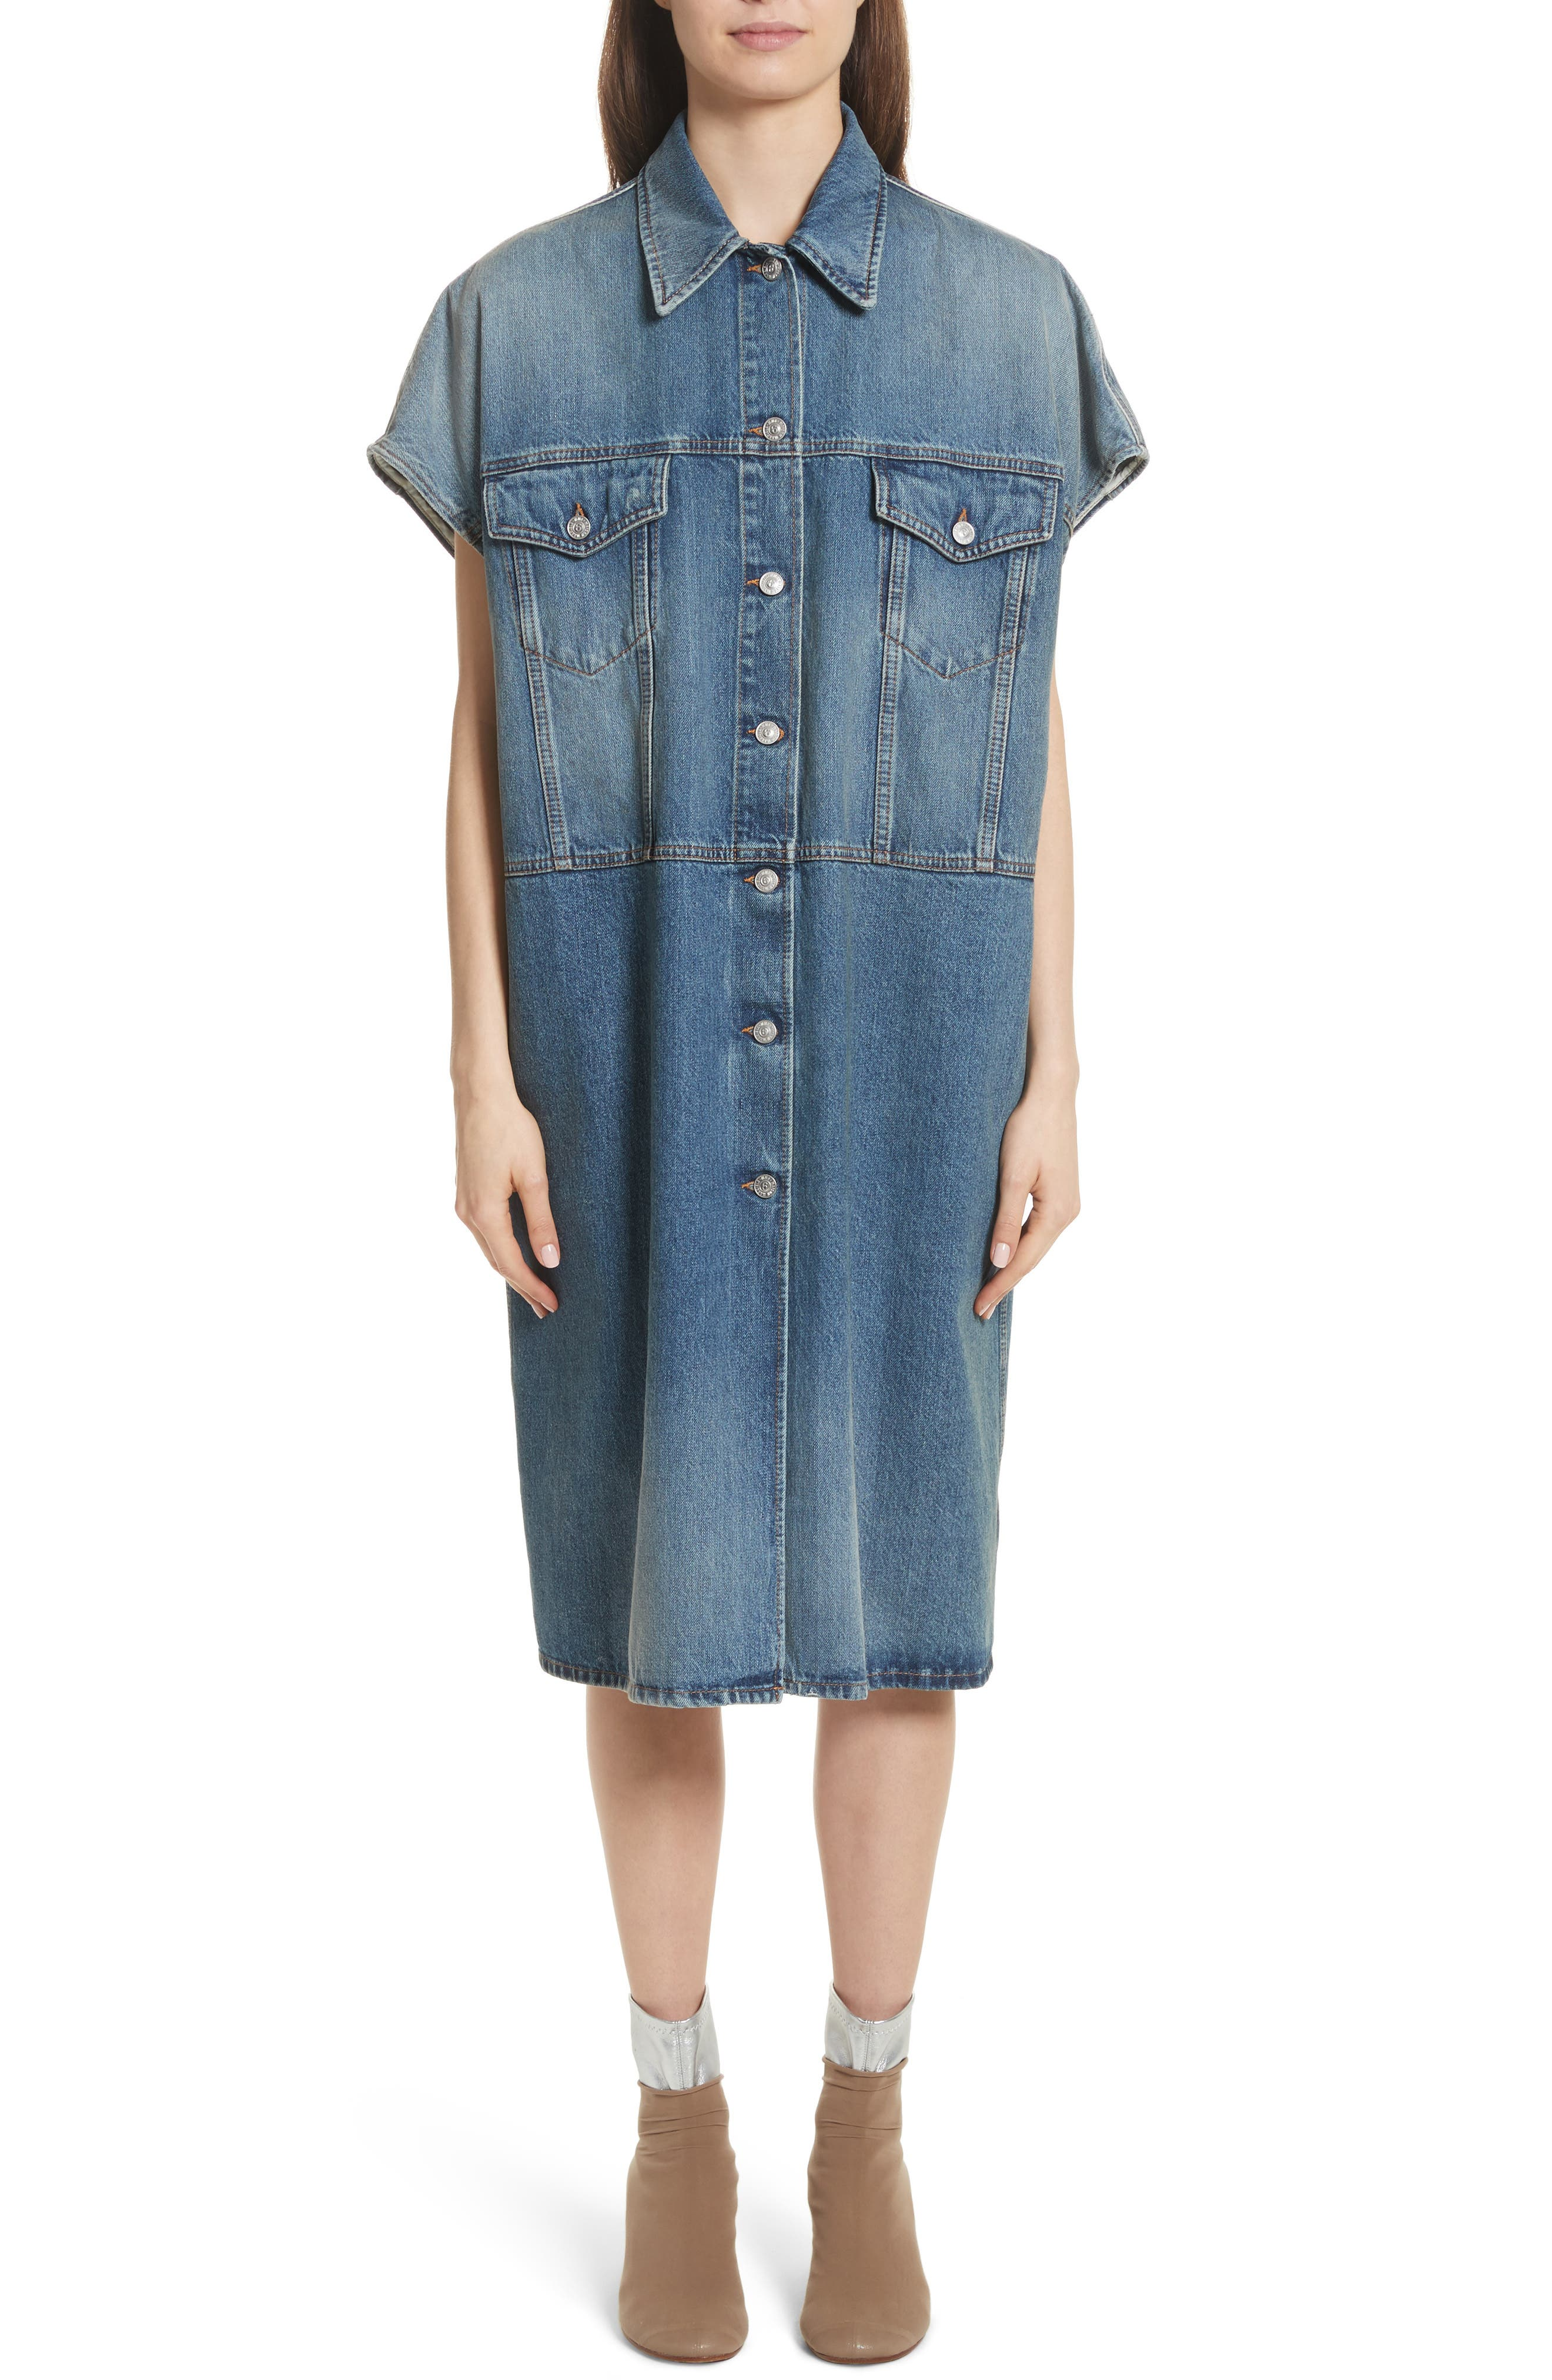 MM6 Maison Margiela Denim Dress